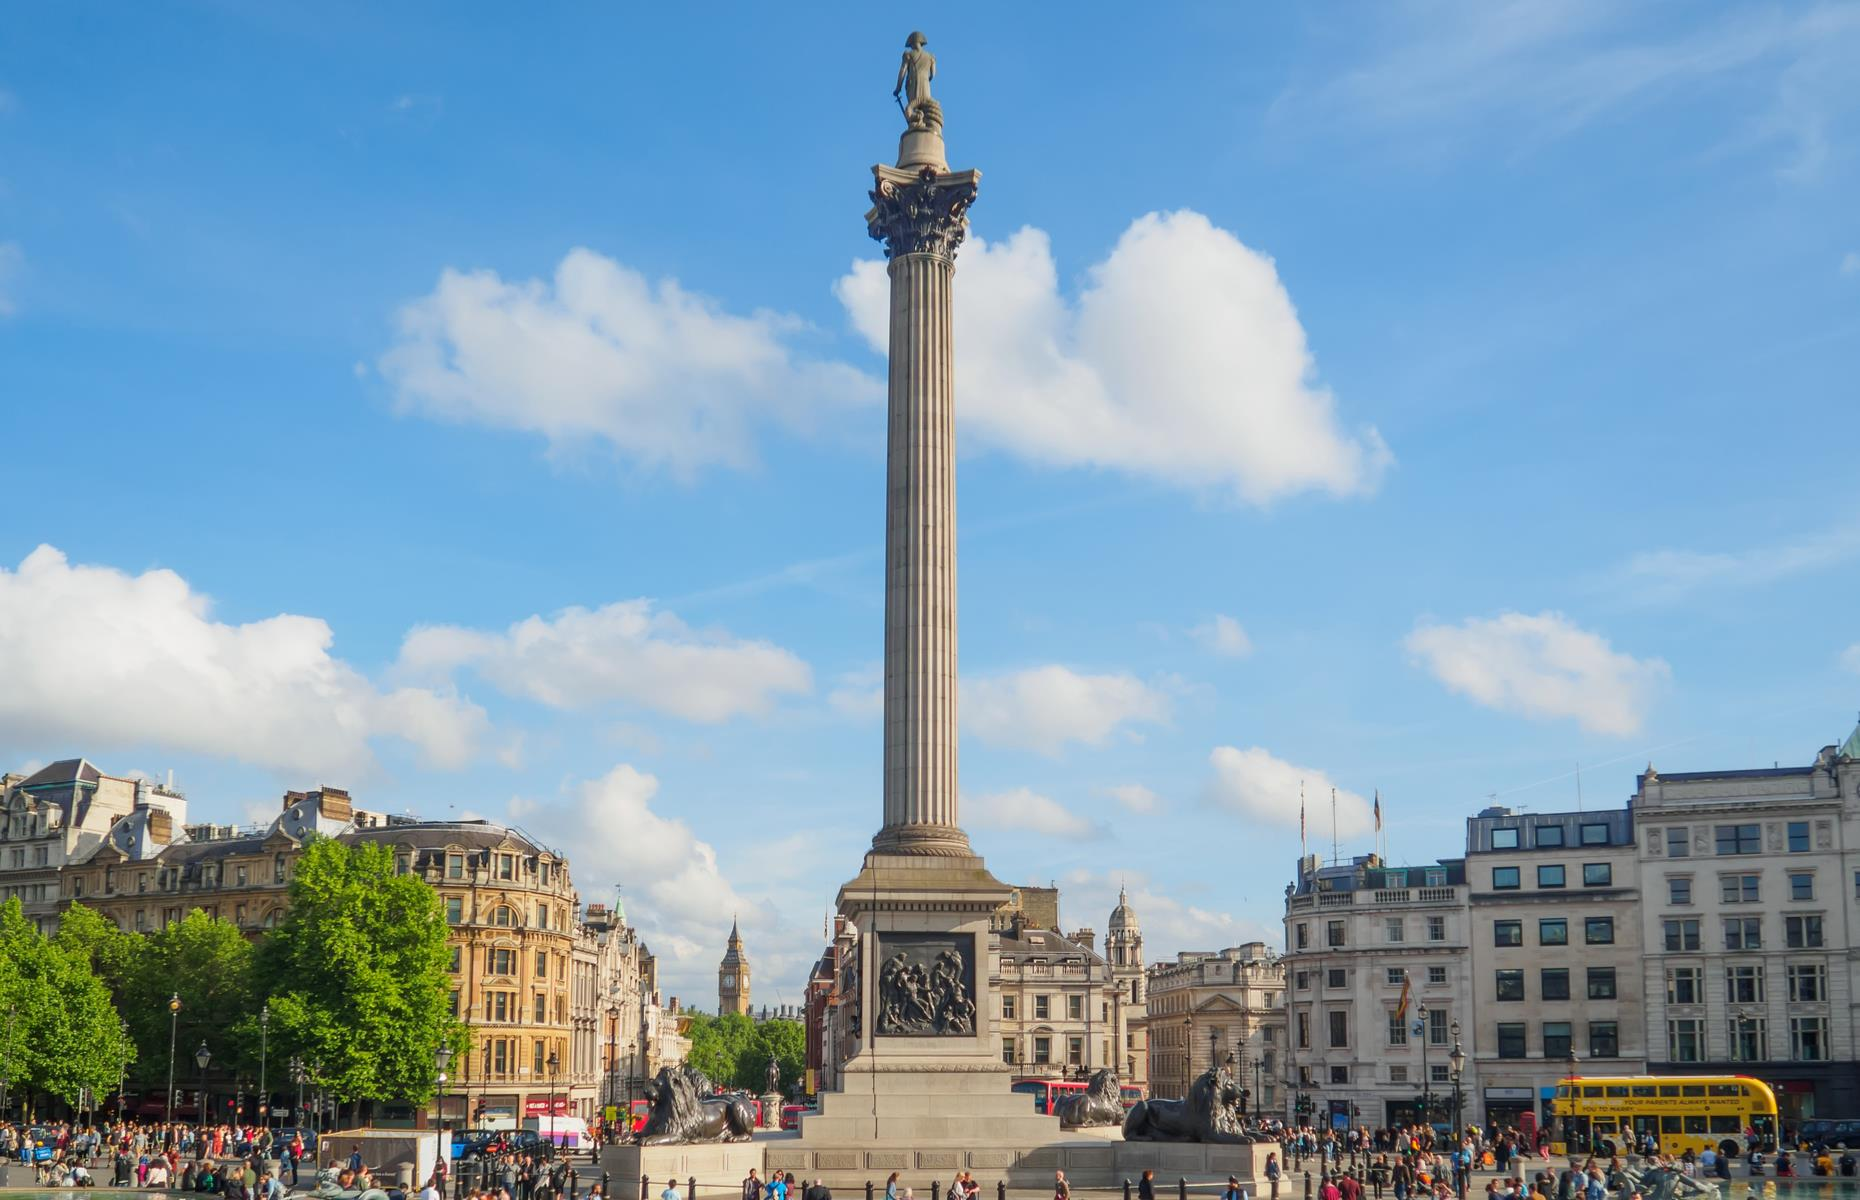 Slide 4 of 28: Nelson's Column (pictured) dominates London's Trafalgar Square and immortalizes the lauded Admiral Horatio Nelson, who died at the Battle of Trafalgar in 1805 having defeated the French. It almost never existed, though. Politician and officer Sir Frederick William Trench wanted to commemorate the battle with something rather different: a gargantuan pyramid structure larger than St Paul's Cathedral. Luckily Trench's wishes were never fulfilled and the tribute to the late admiral was built instead.